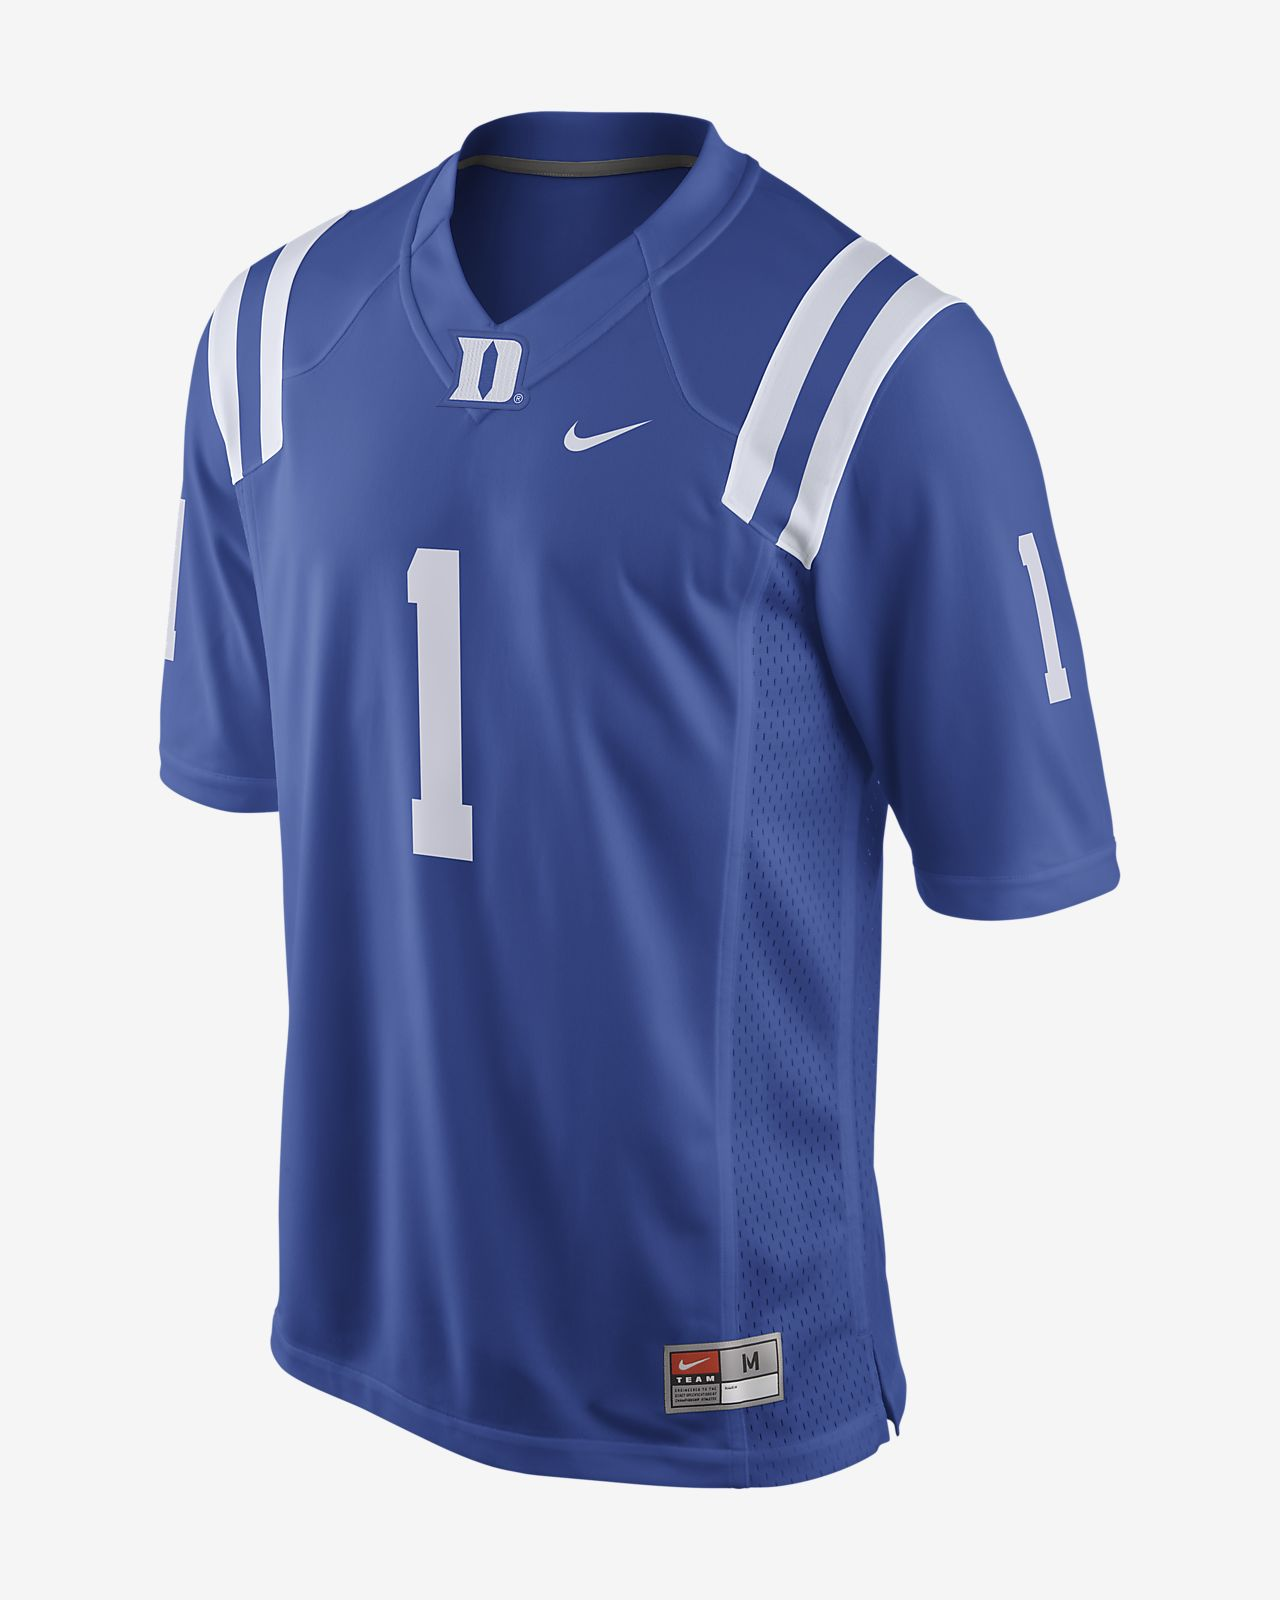 Nike College Game (Duke) Men's Football Jersey